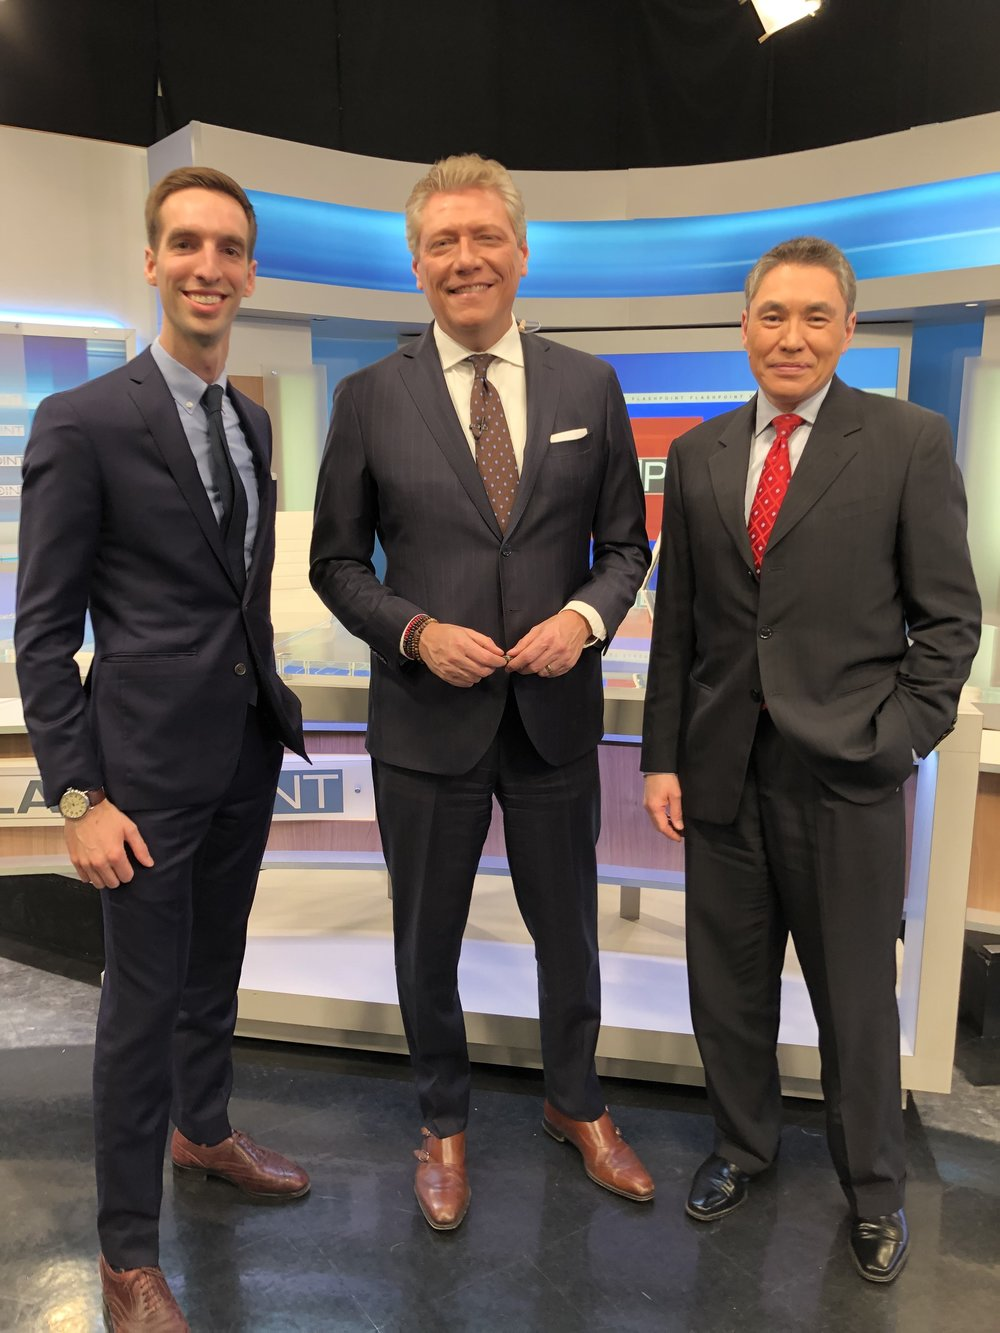 Paul Thomas, MD with Devin Scillian and Dr. Frank McGeorge of WDIV Detroit on the set of Flashpoint. The discussion on Flashpoint this week centered around Direct Primary Care, a new model for health care that aims to improve the quality of healthcare while decreasing overall costs.